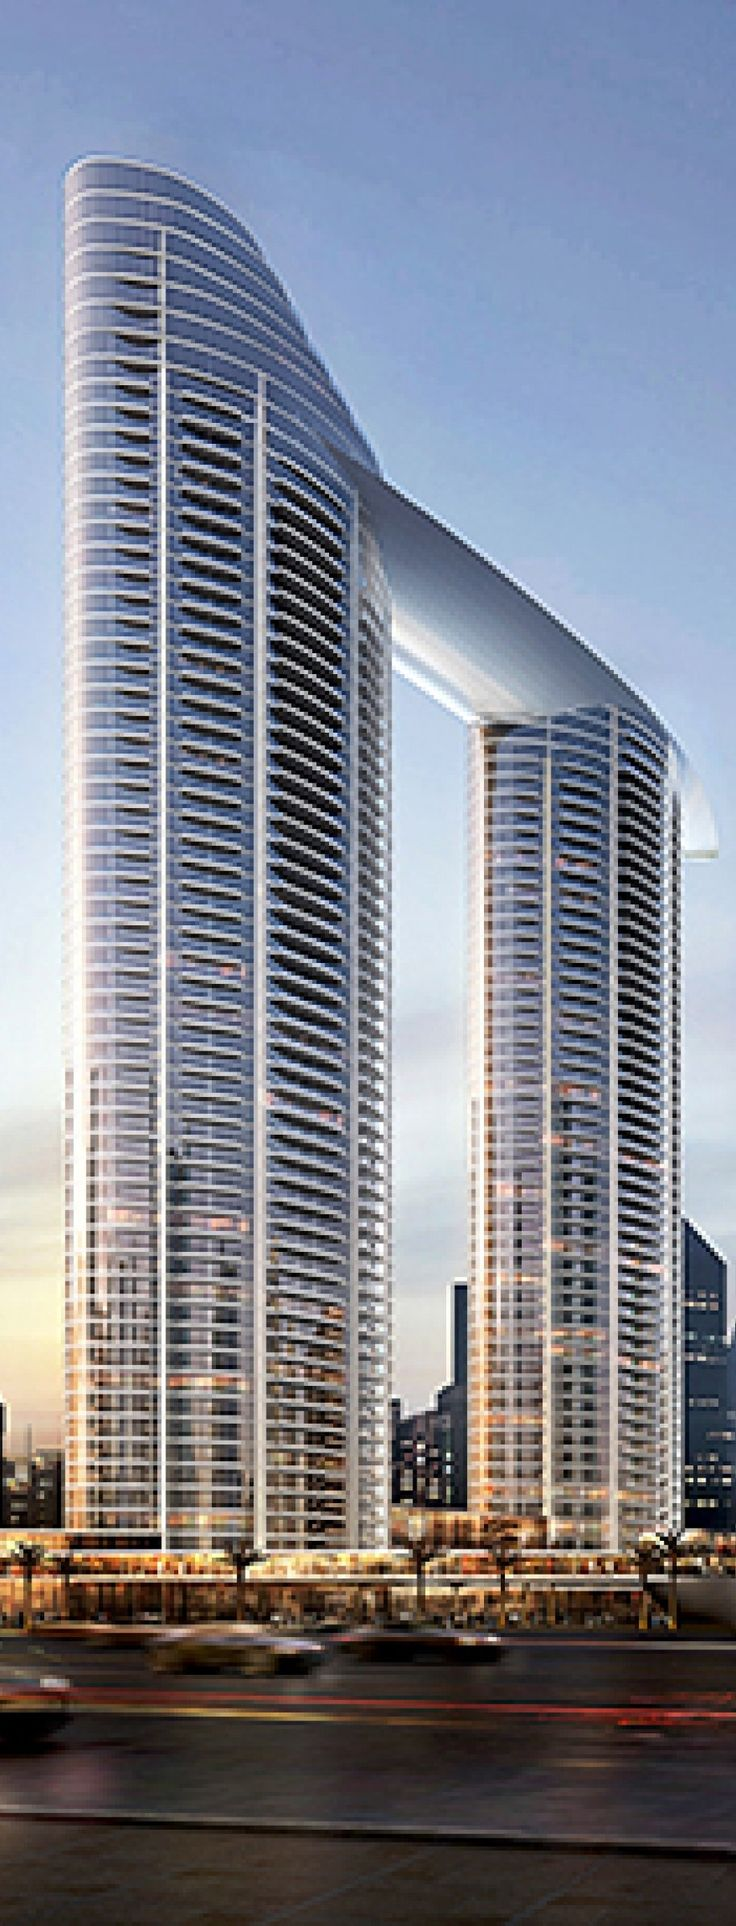 The Address Residence Sky View Tower, Dubai, UAE designed by Skidmore, Owings & Merrill (SOM) Architects :: 50 floors, height 230m